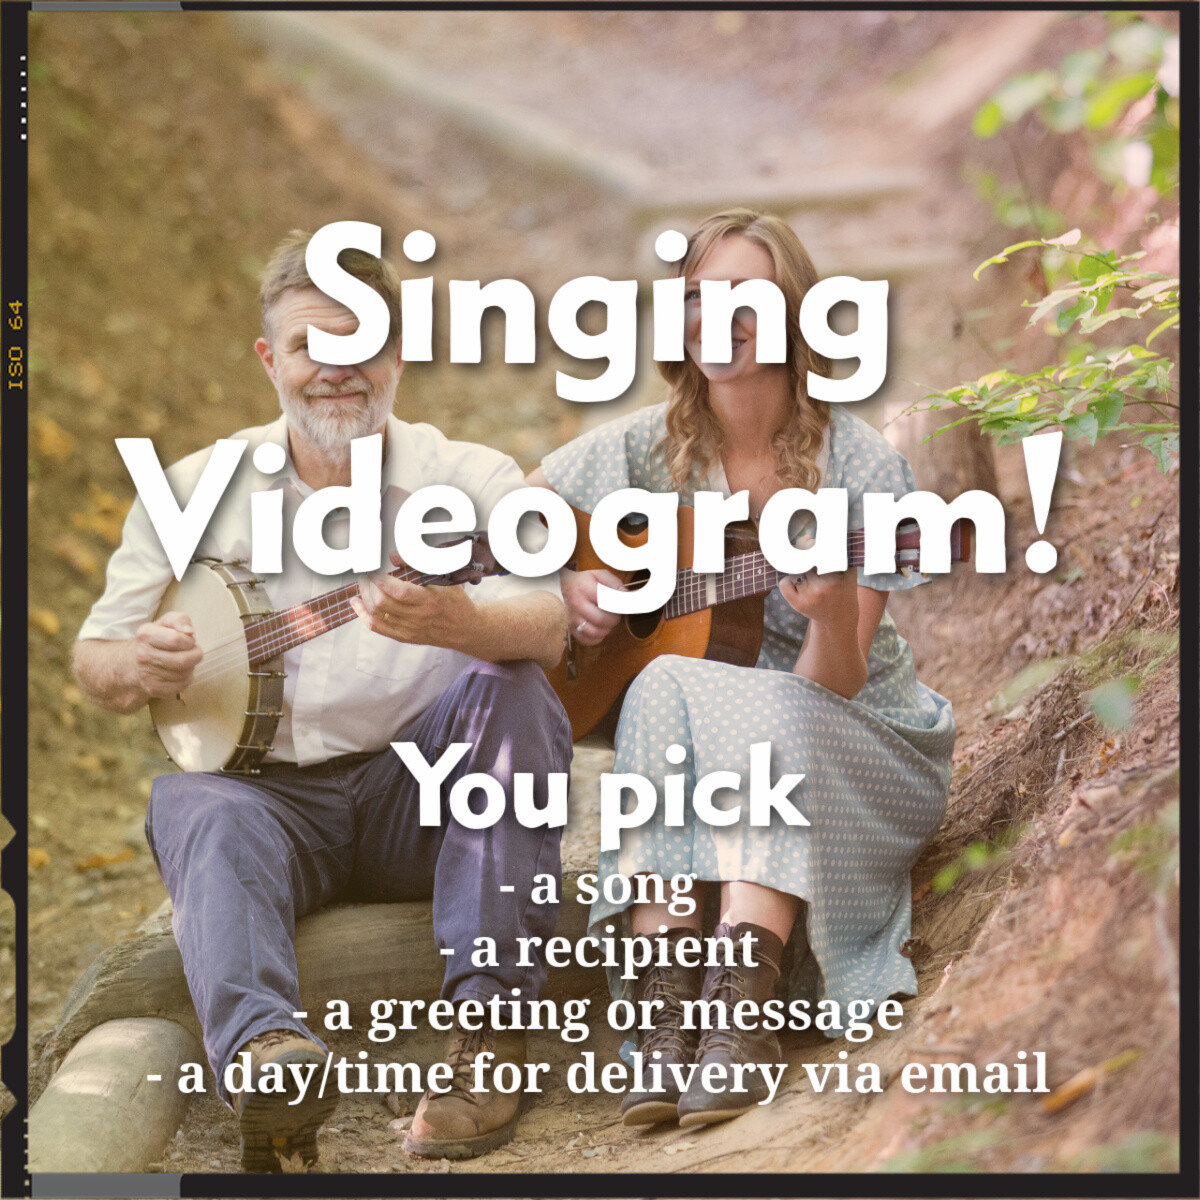 Singing Videogram!